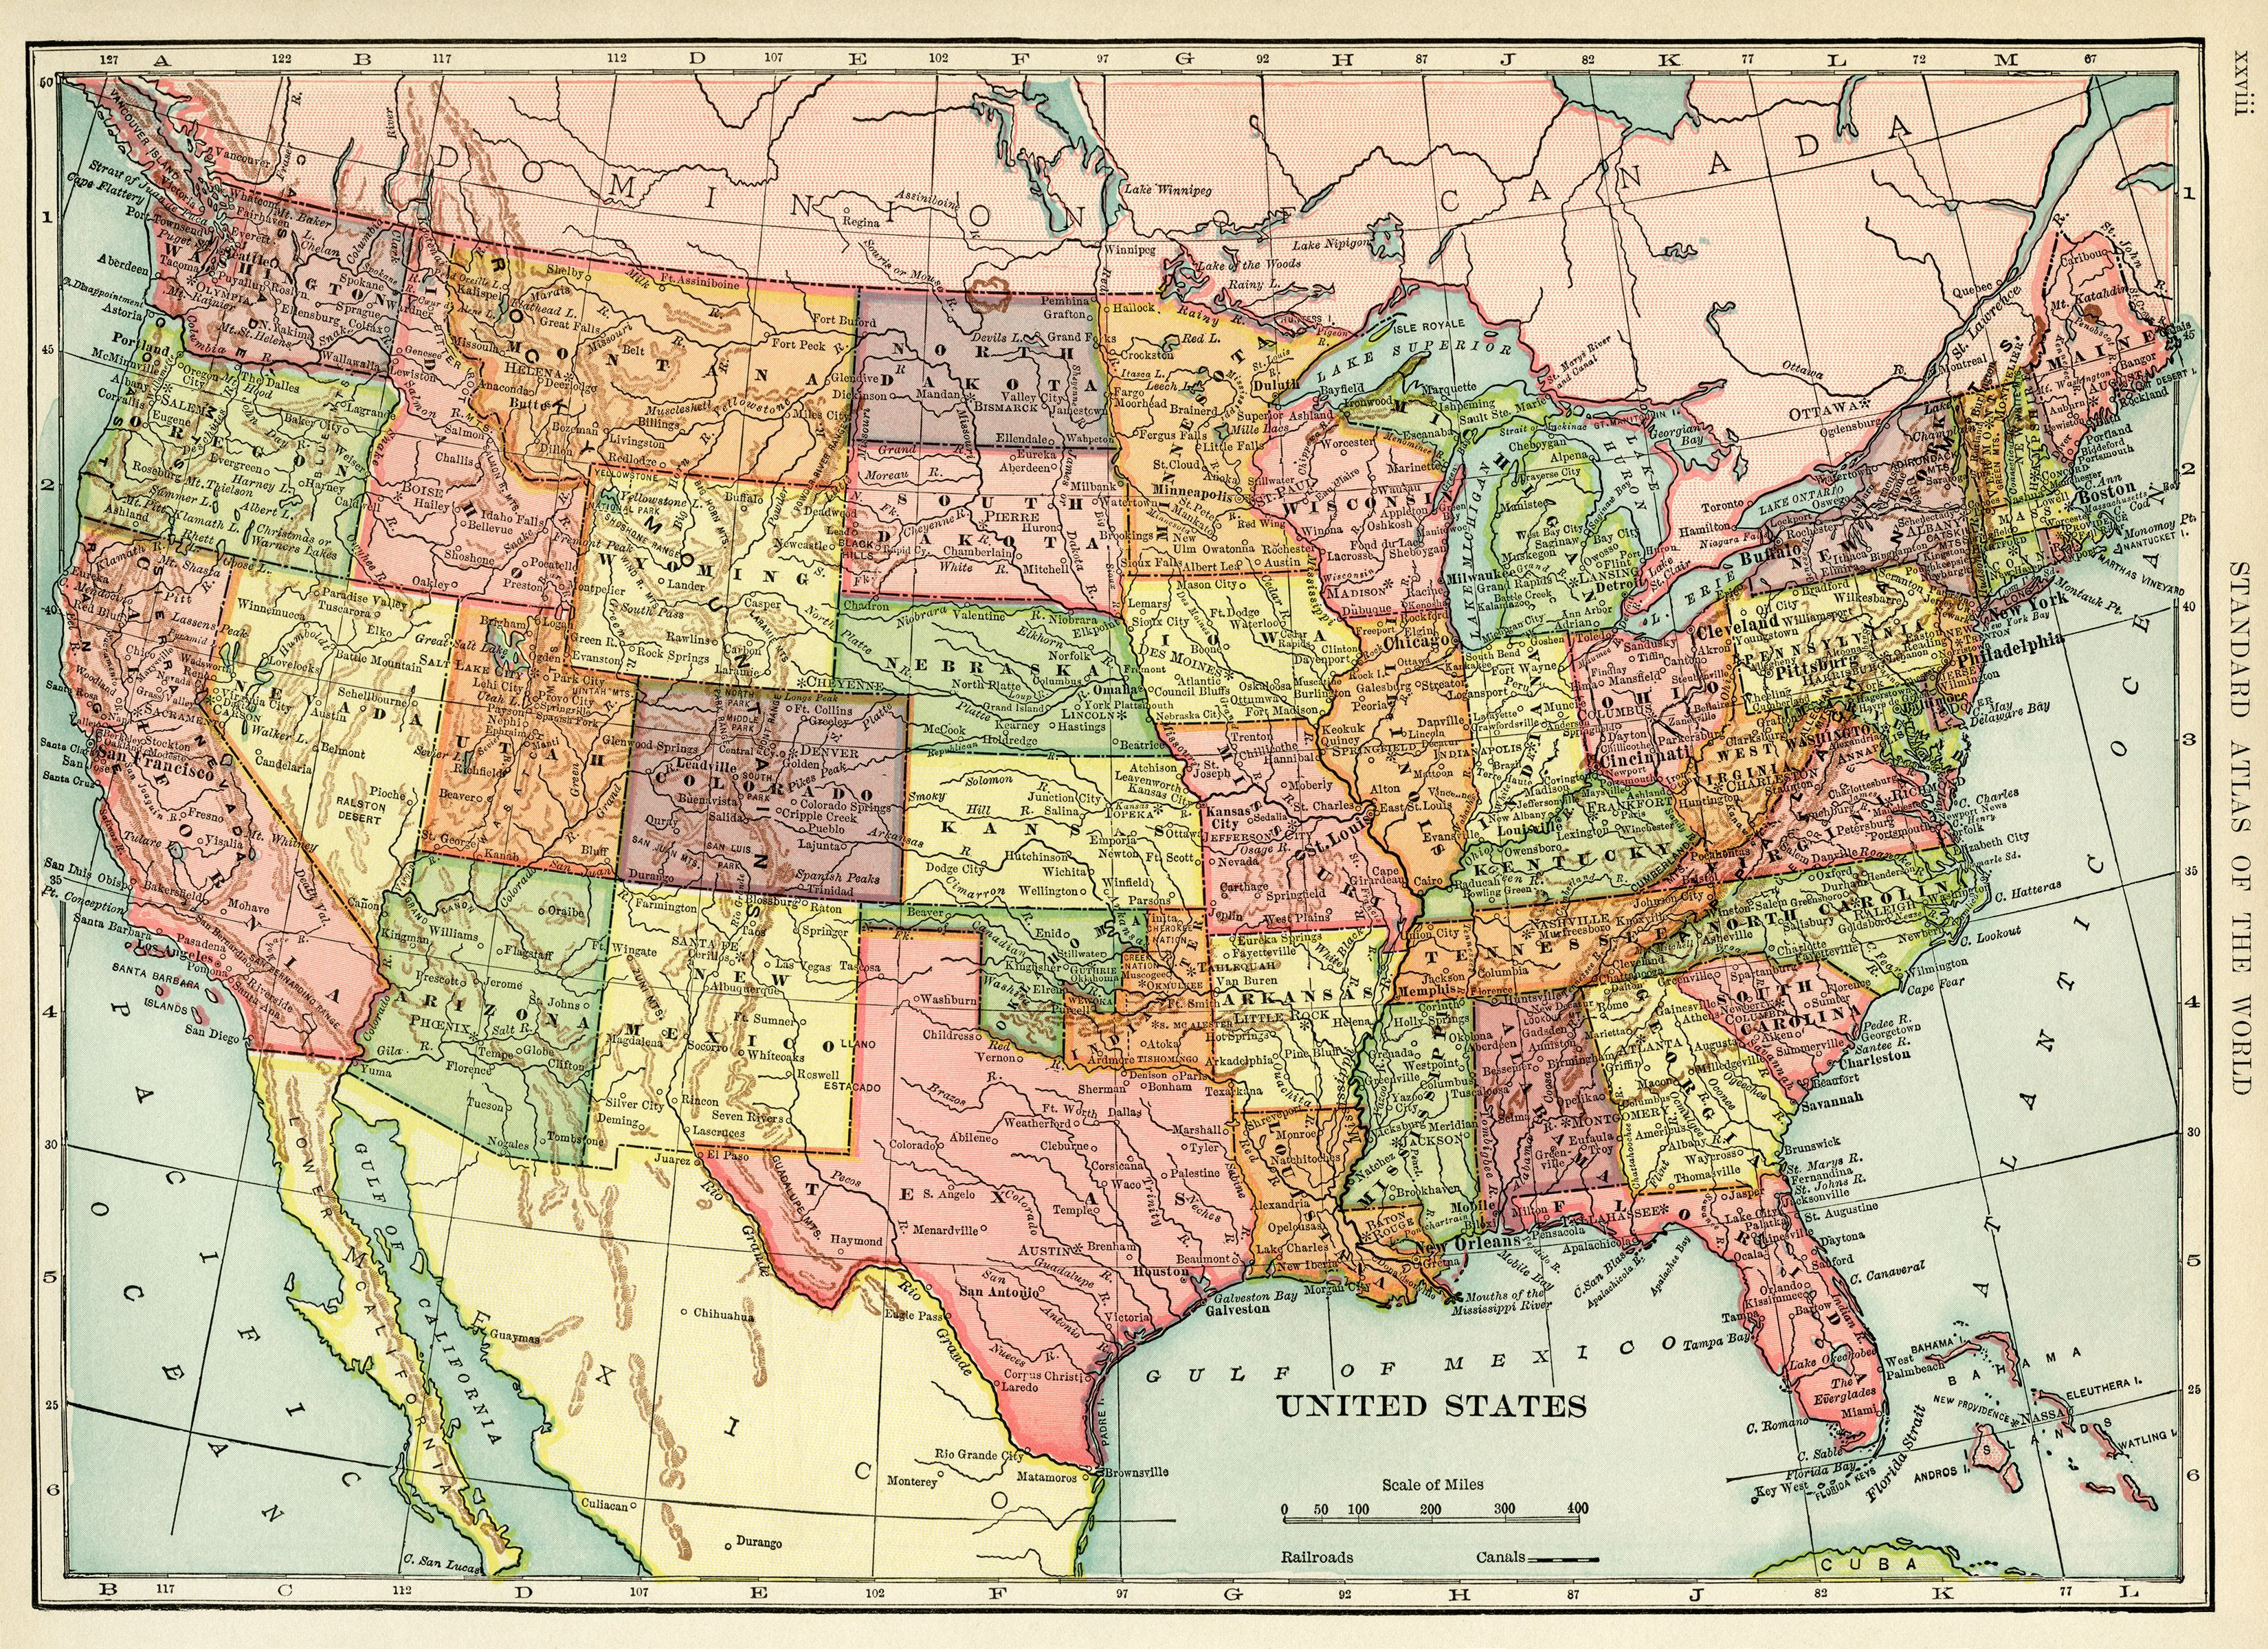 united states map photo collage united states map vintage map download antique map history united states map photo collage